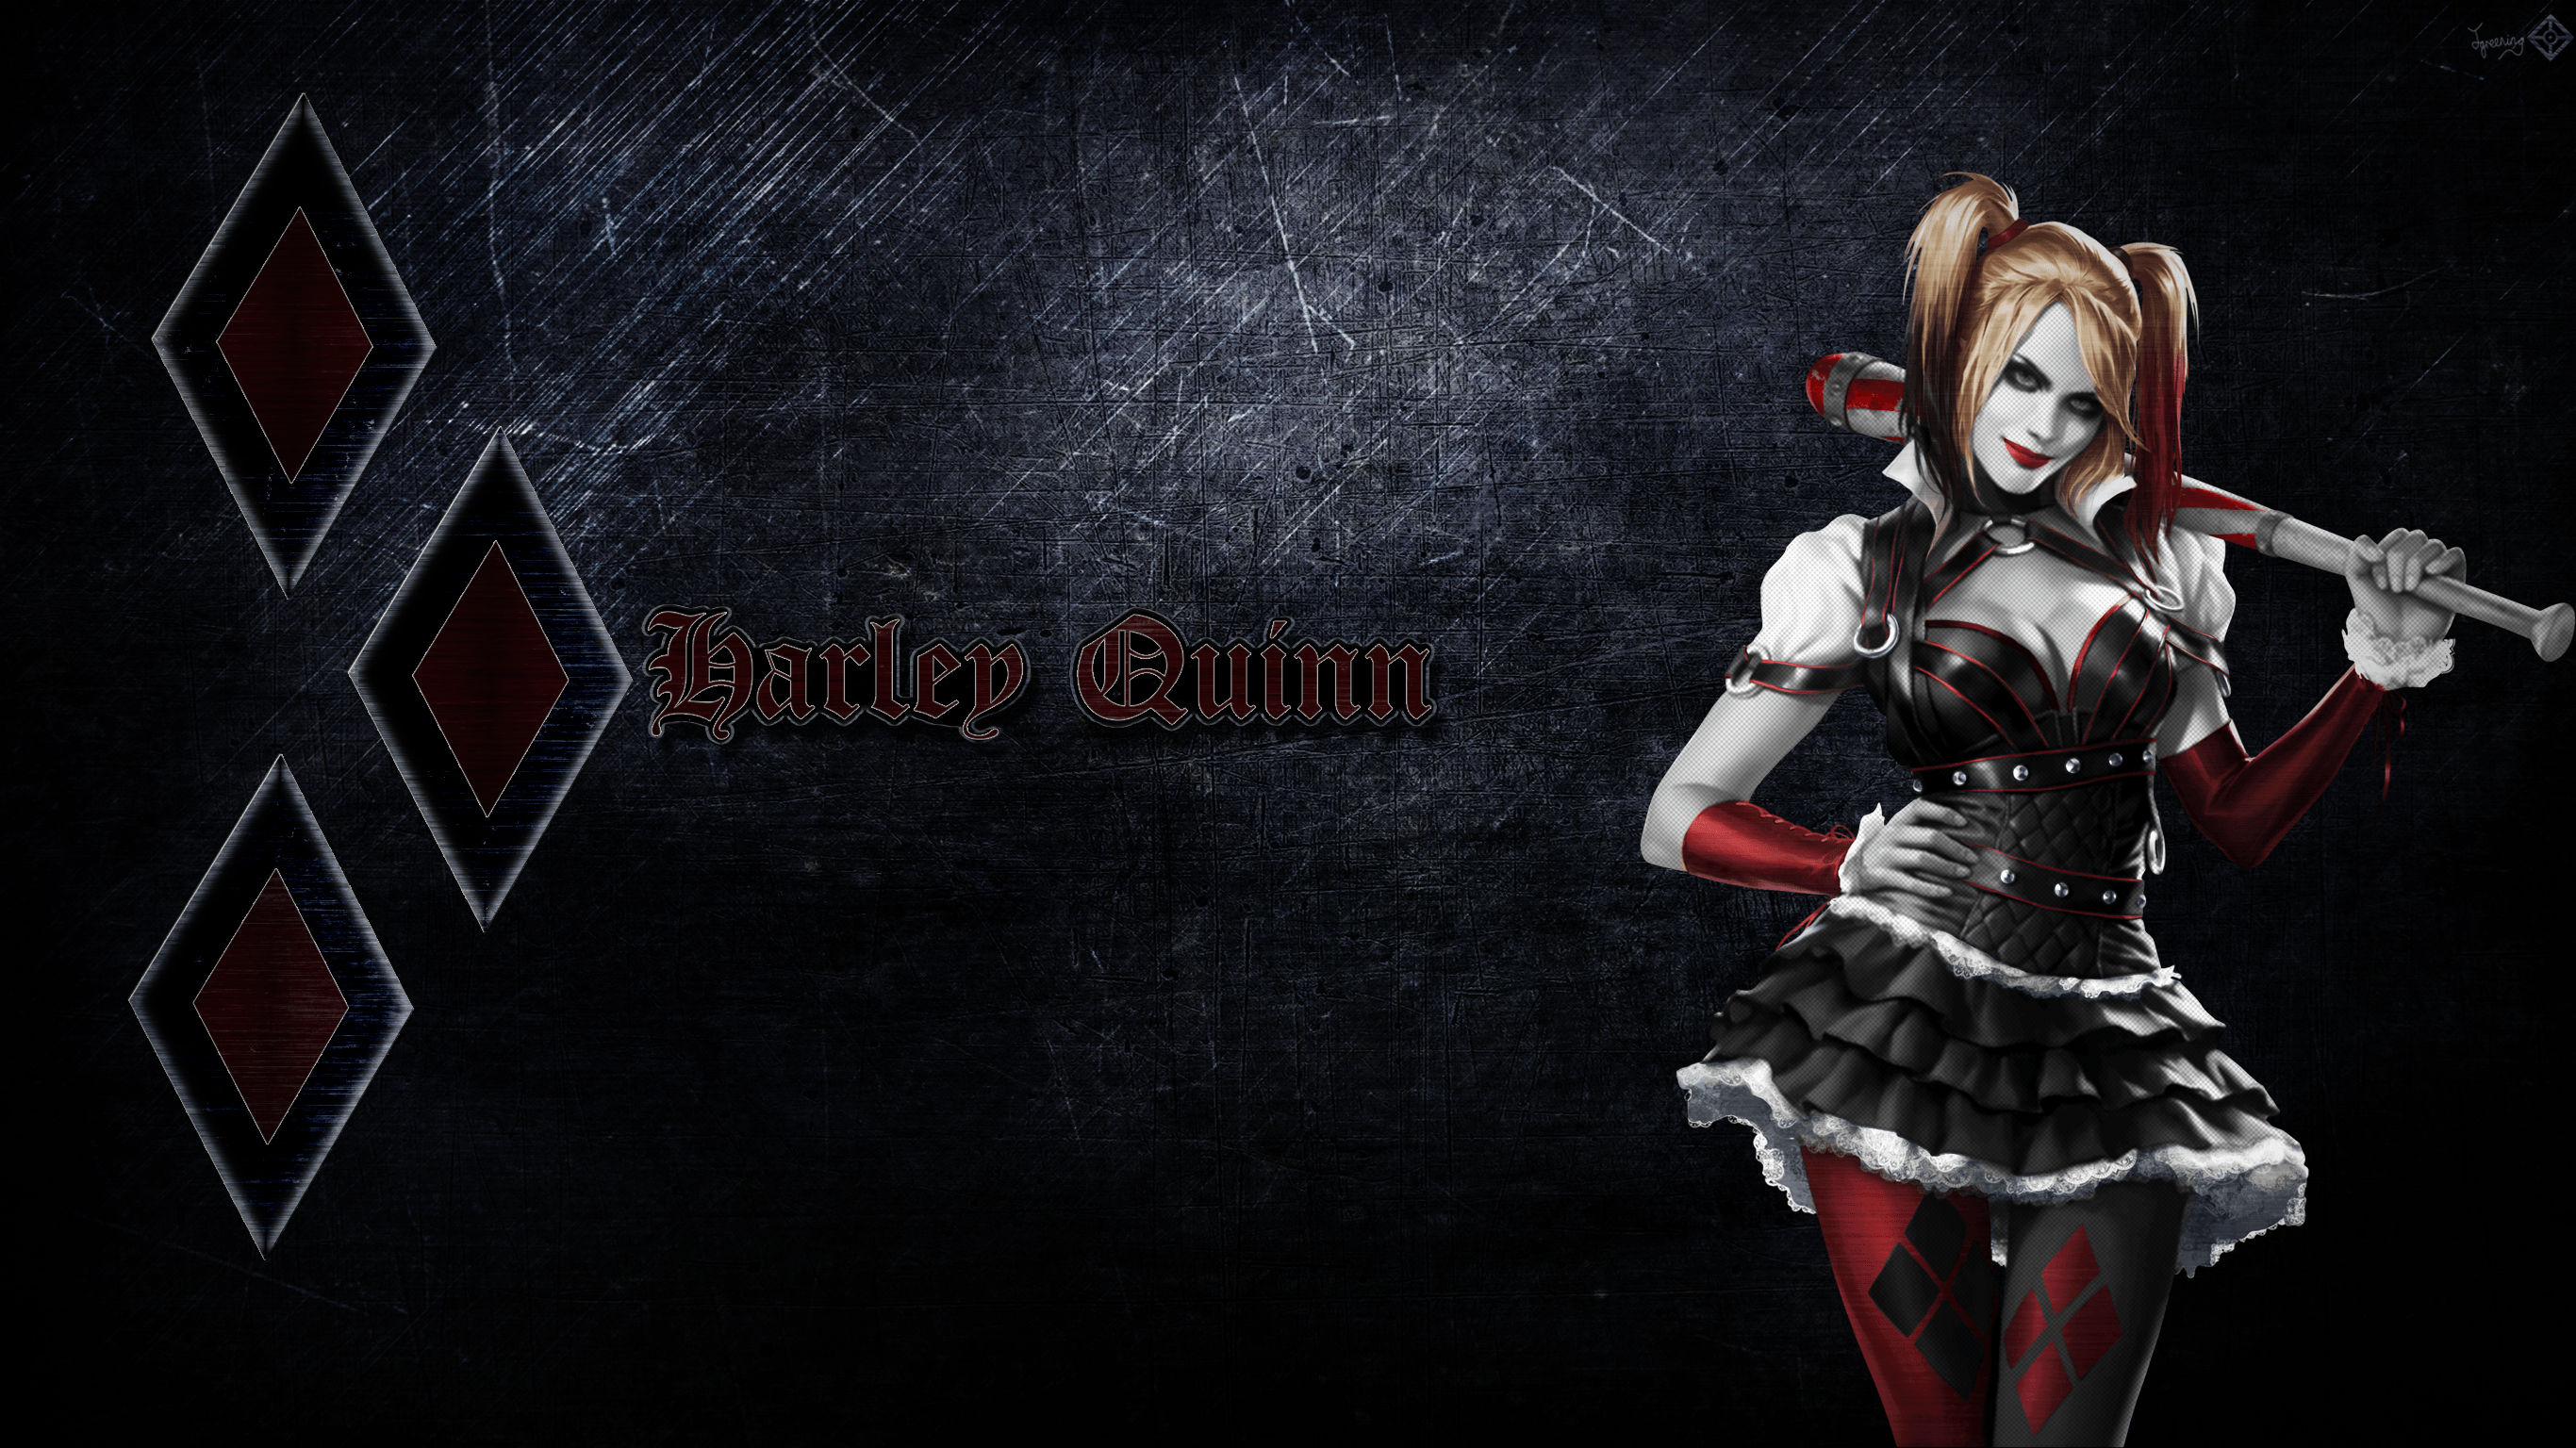 Harley Quinn Wallpaper 1 By JamesG2498 On DeviantArt